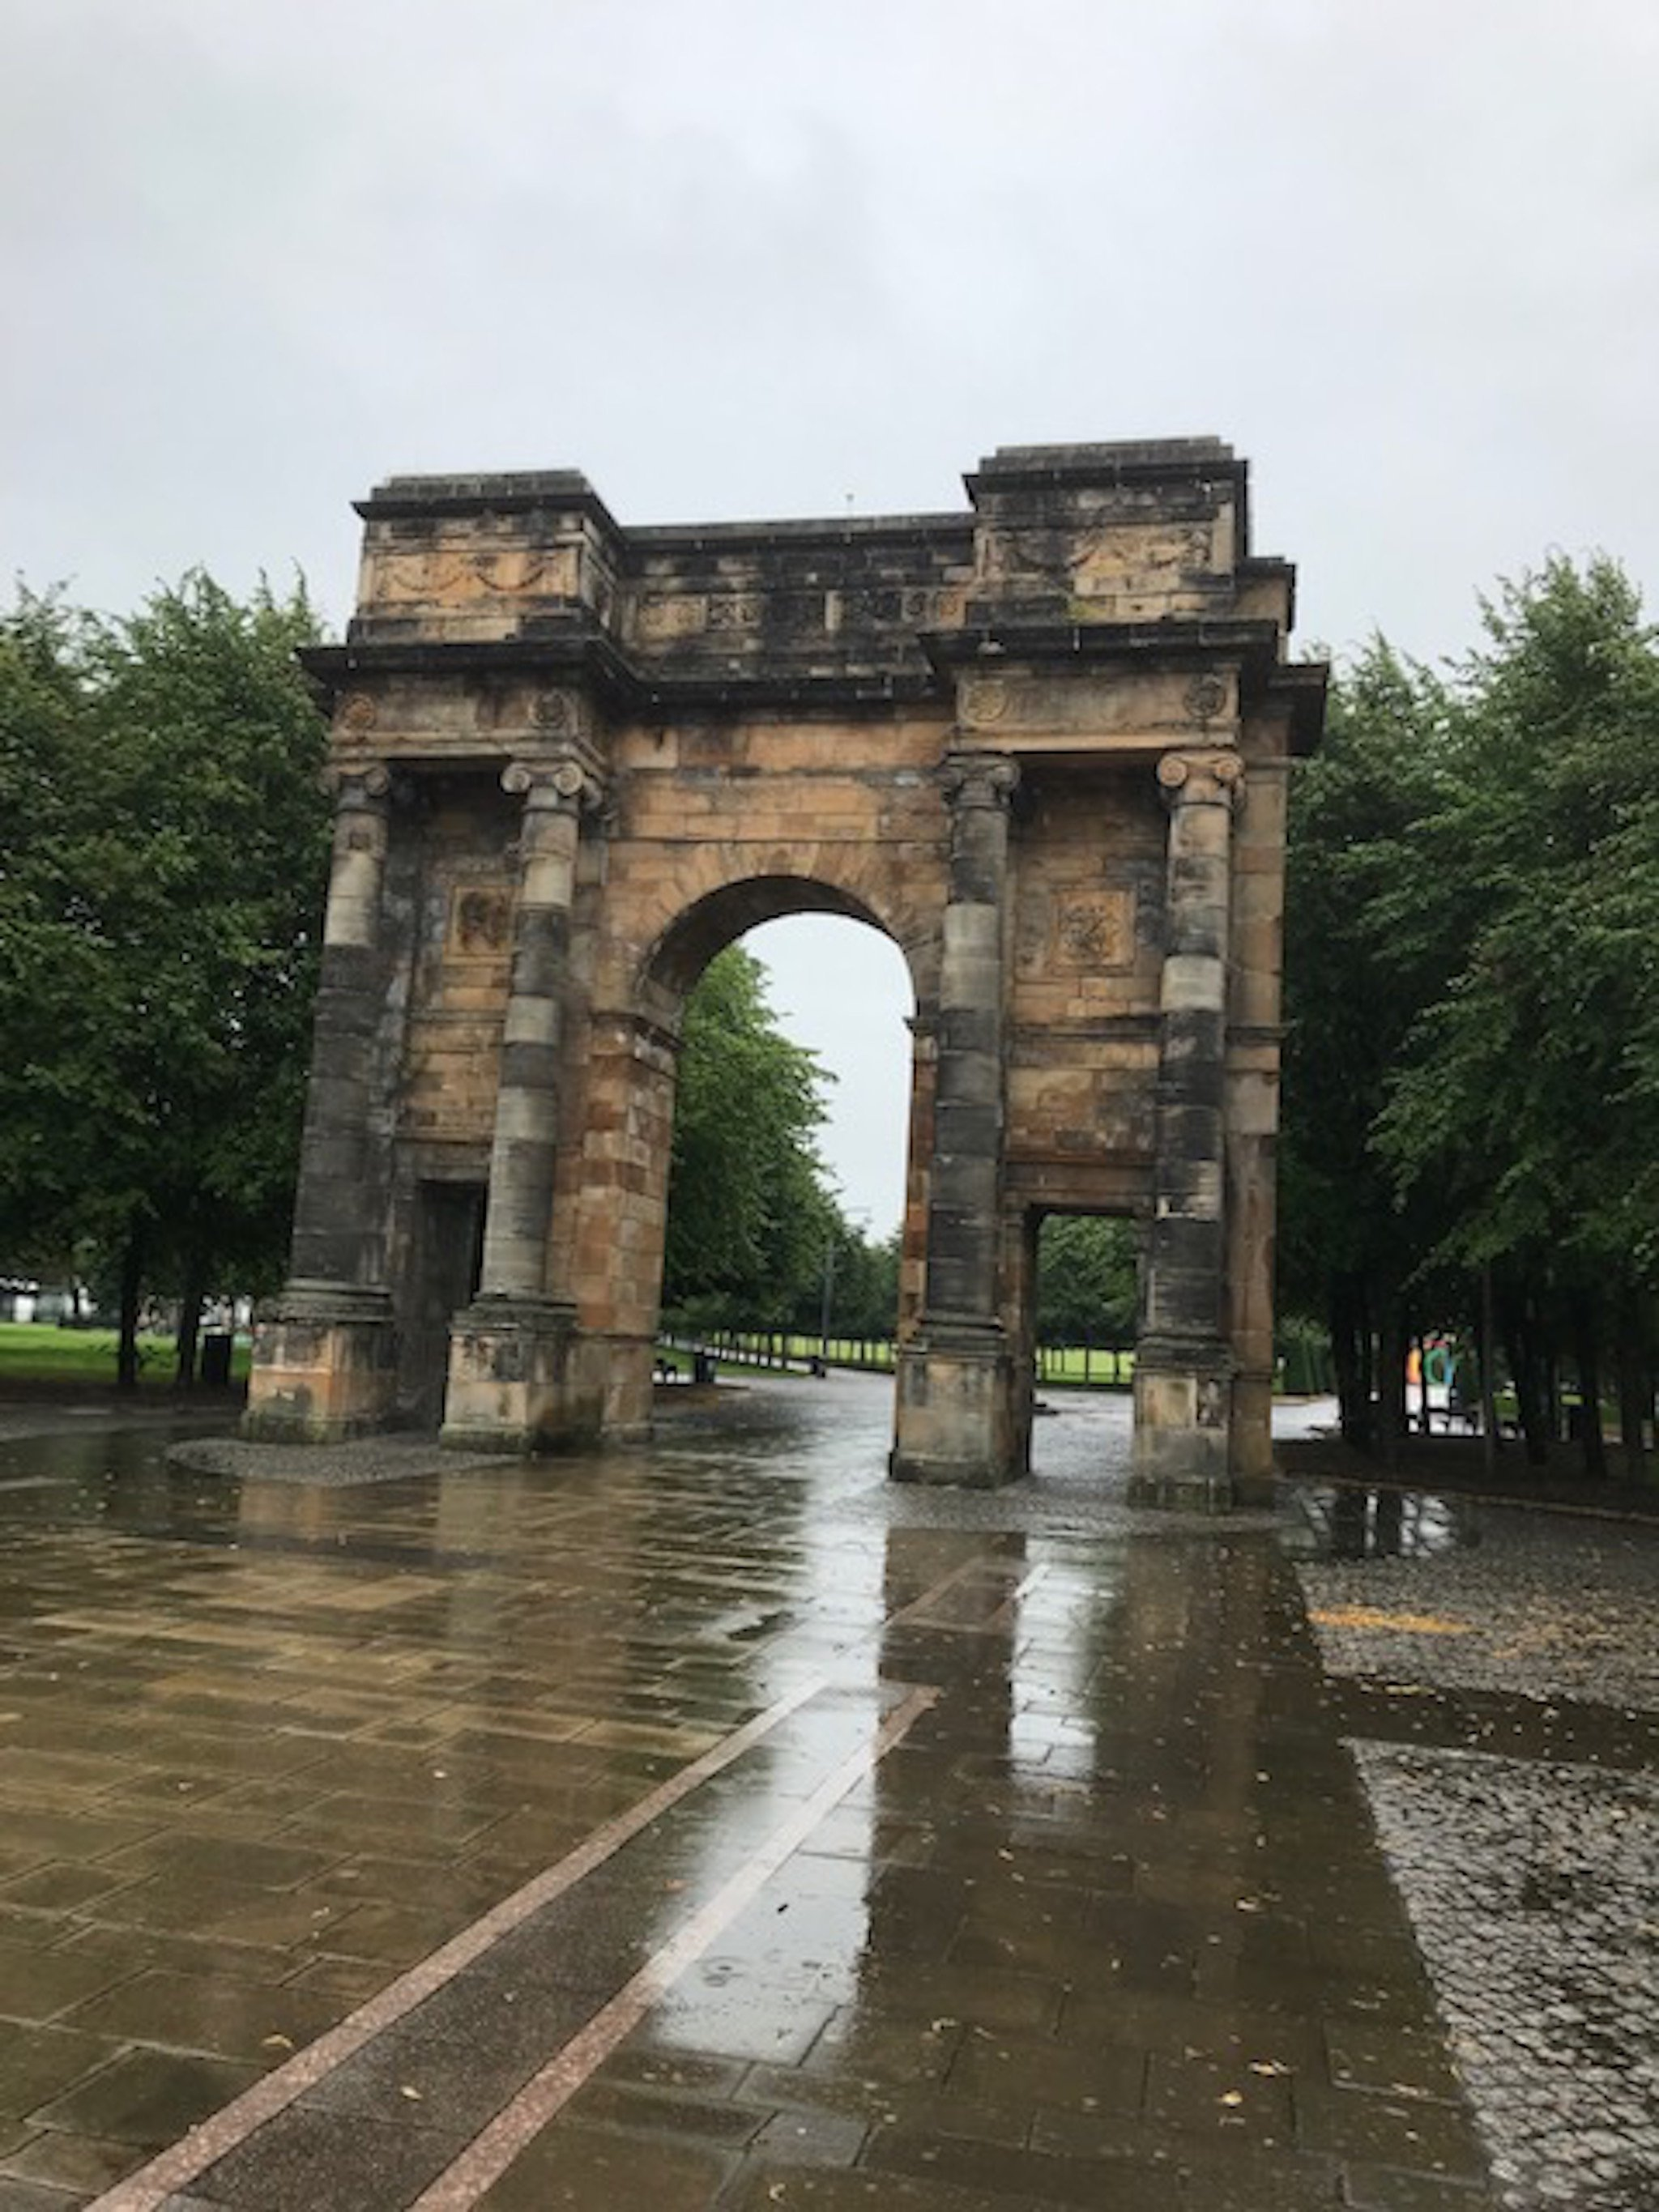 McLennan Arch on Glasgow audio tour Glasgow through the ages: A sightseeing walk from the Cathedral to Glasgow Green